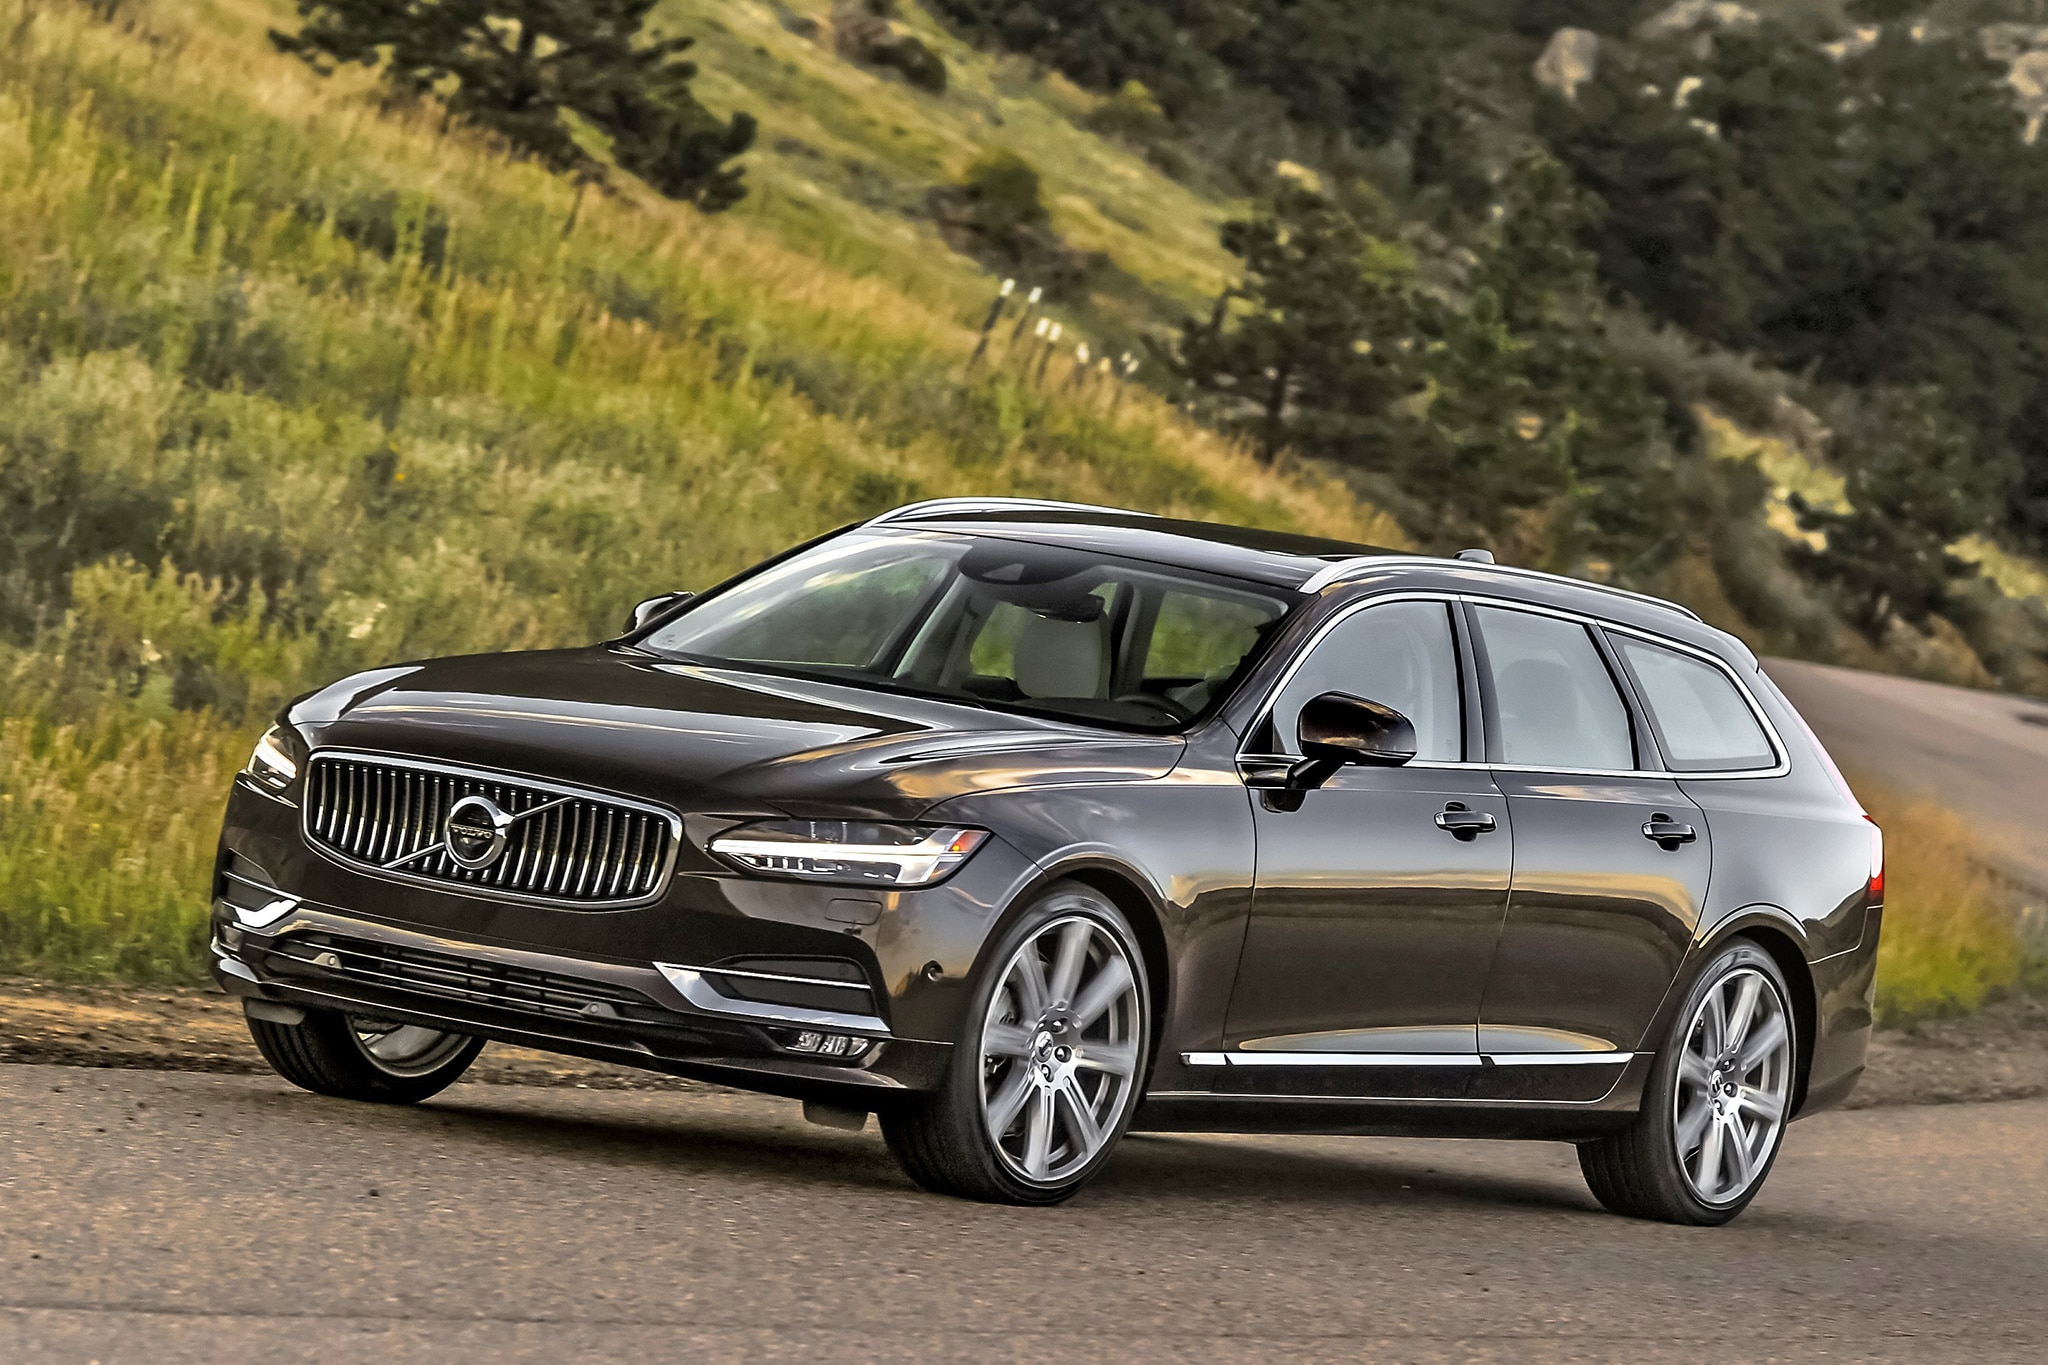 Swedes In Denver We Drive The 2018 Volvo Xc60 V70 And S90 T8 Hybrid Financial News Usa